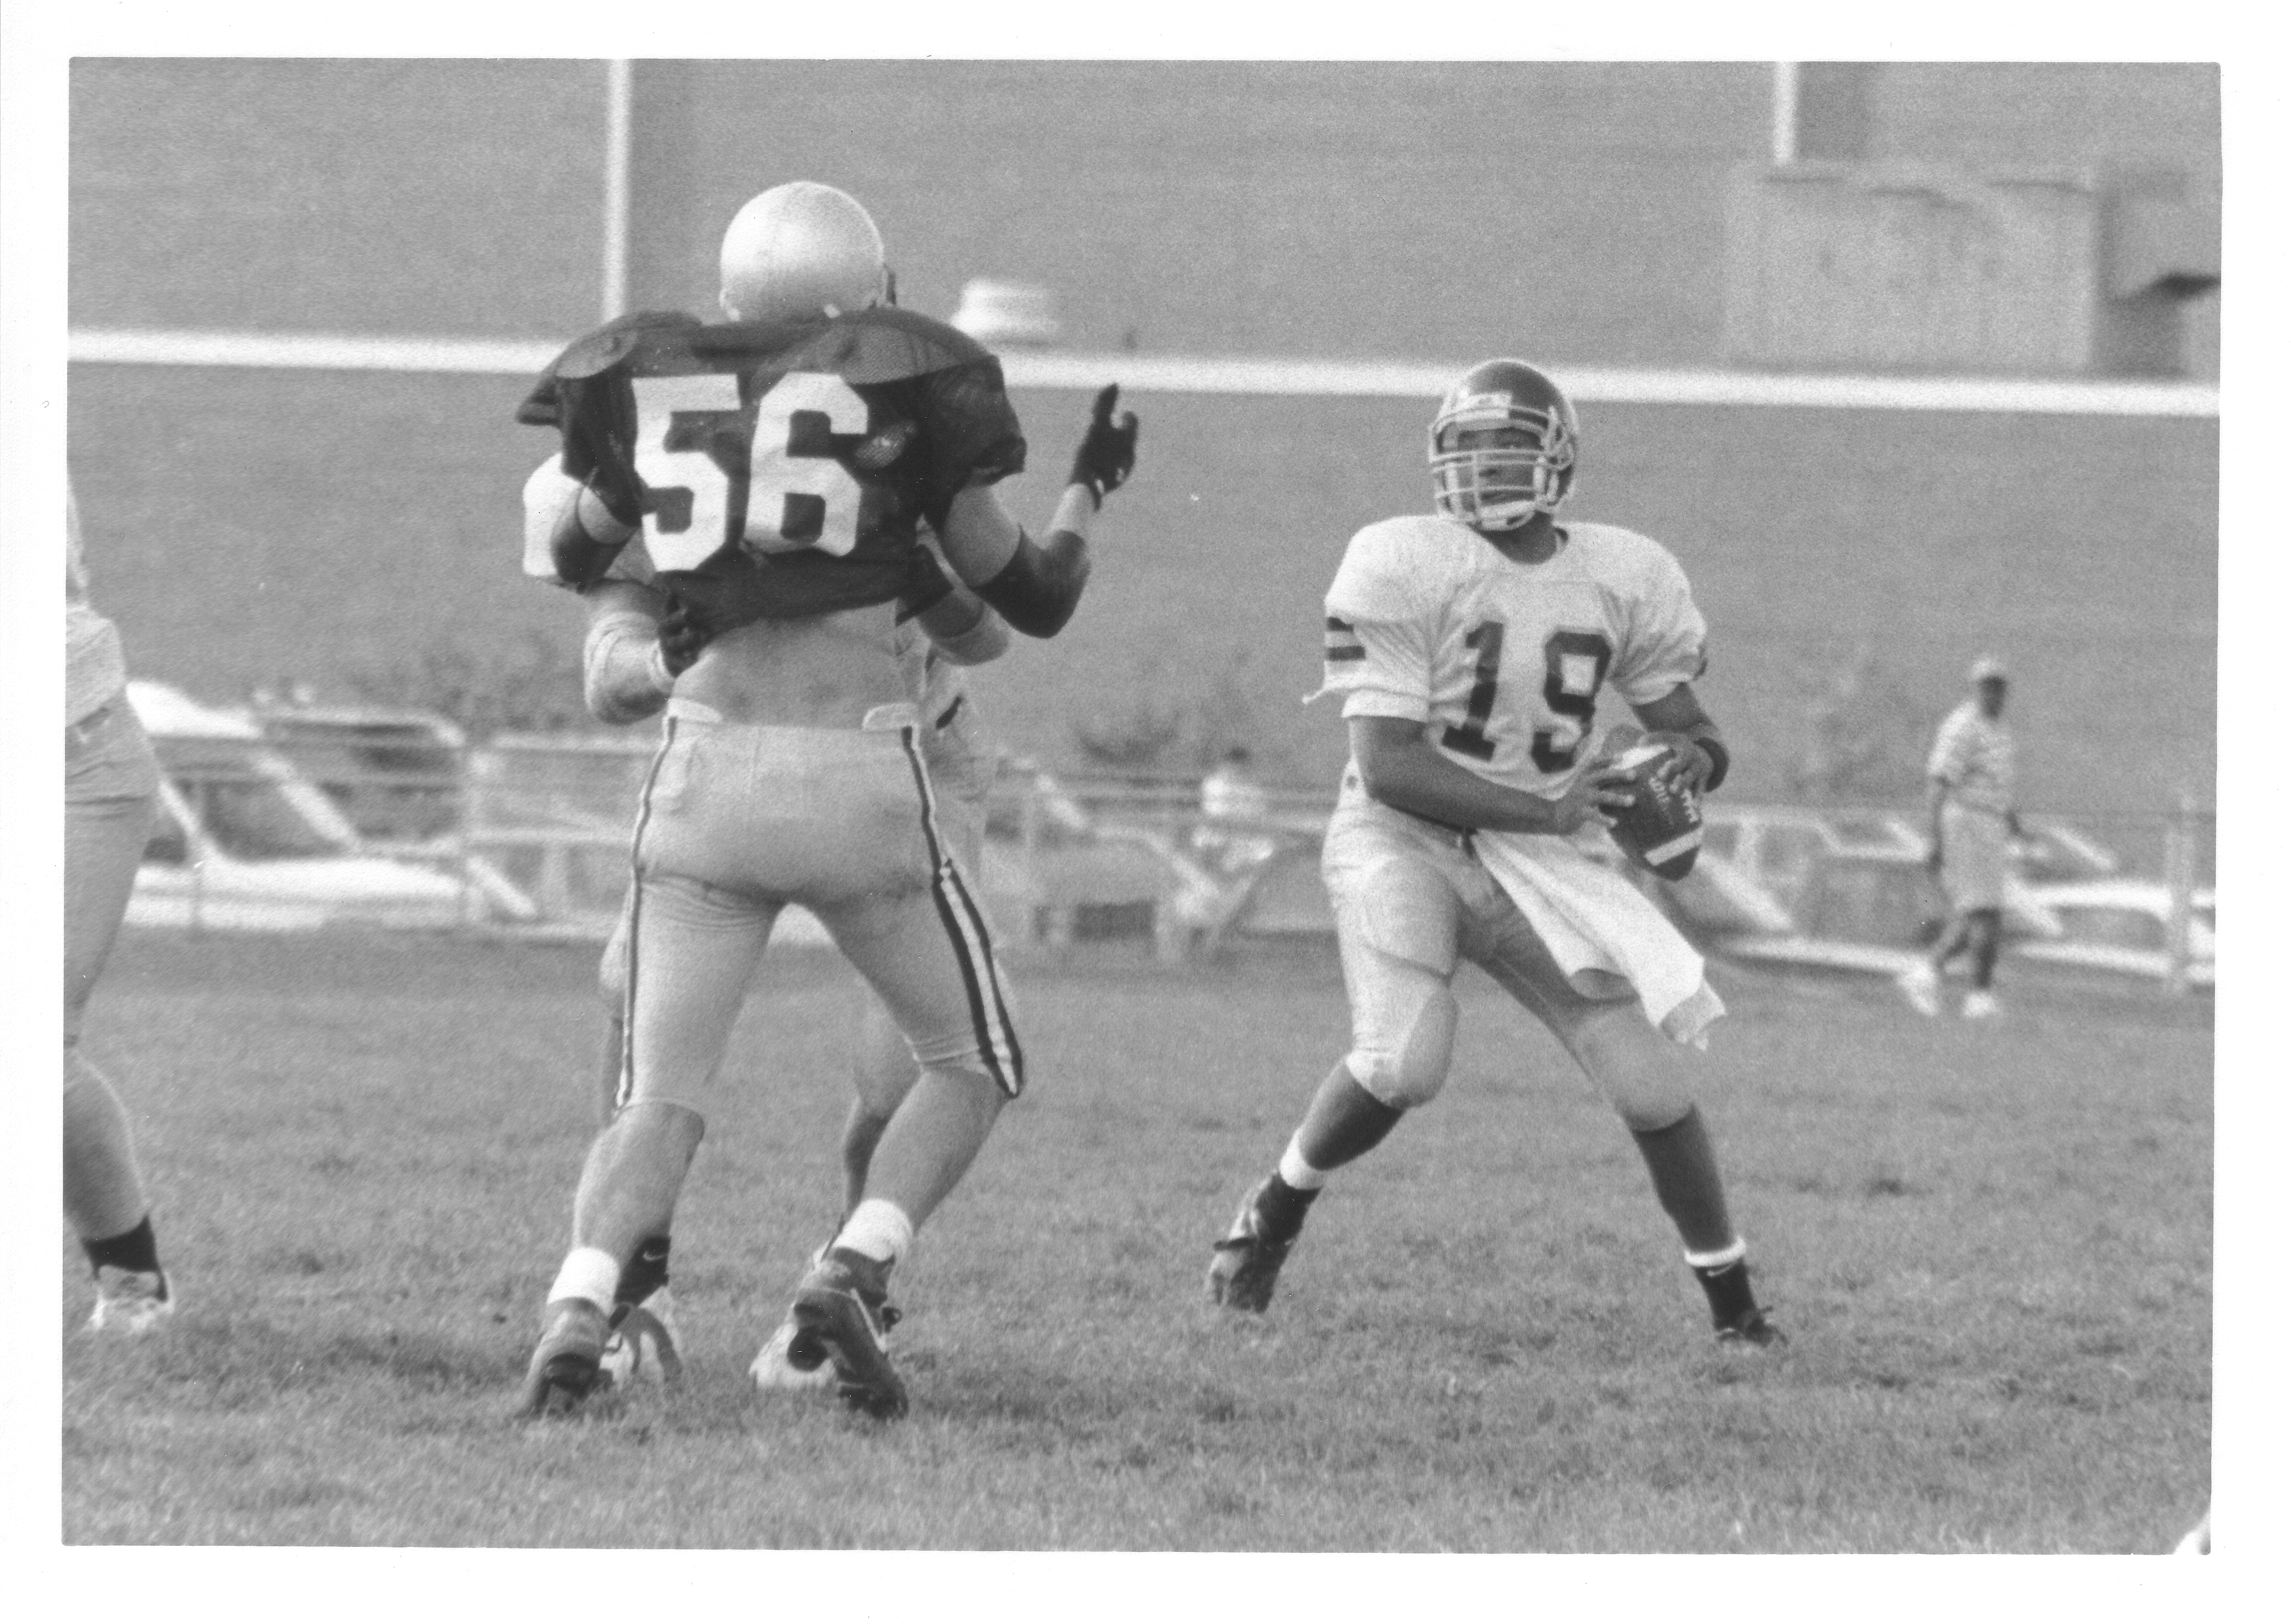 George Mason University quarterback Earl Jackson in action against an unidentified opponent, September 30, 1995